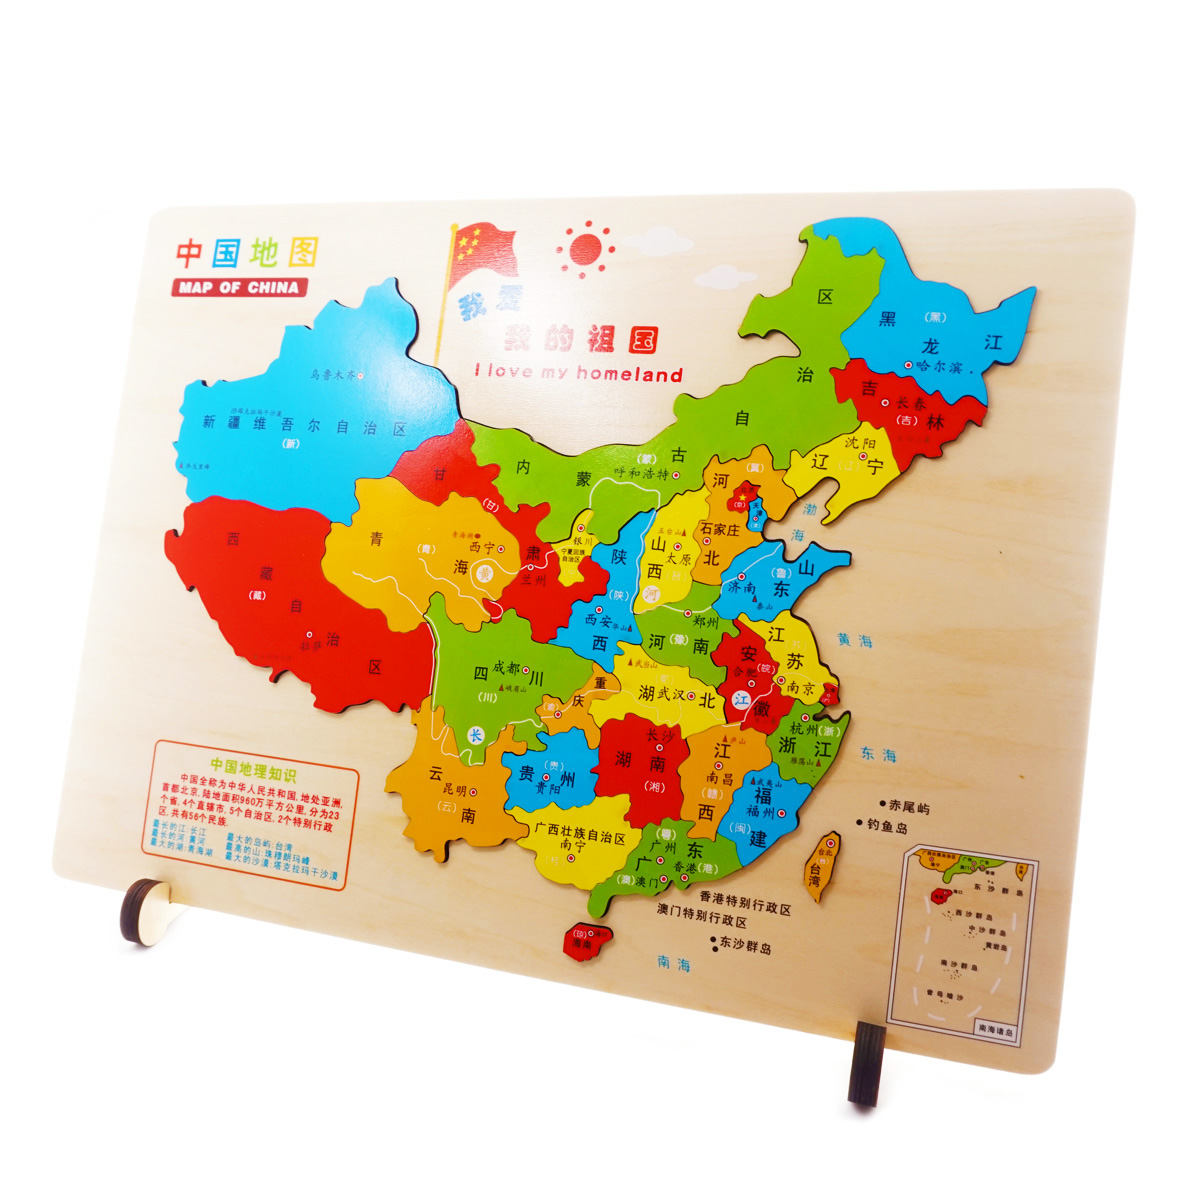 Laser engraving china map world map puzzle large high end wooden applicable age 3 years old 4 years old 5 years old 6 years old 7 years old 8 years old 9 years old 10 years old 11 years old 12 years old 13 years old 14 gumiabroncs Gallery